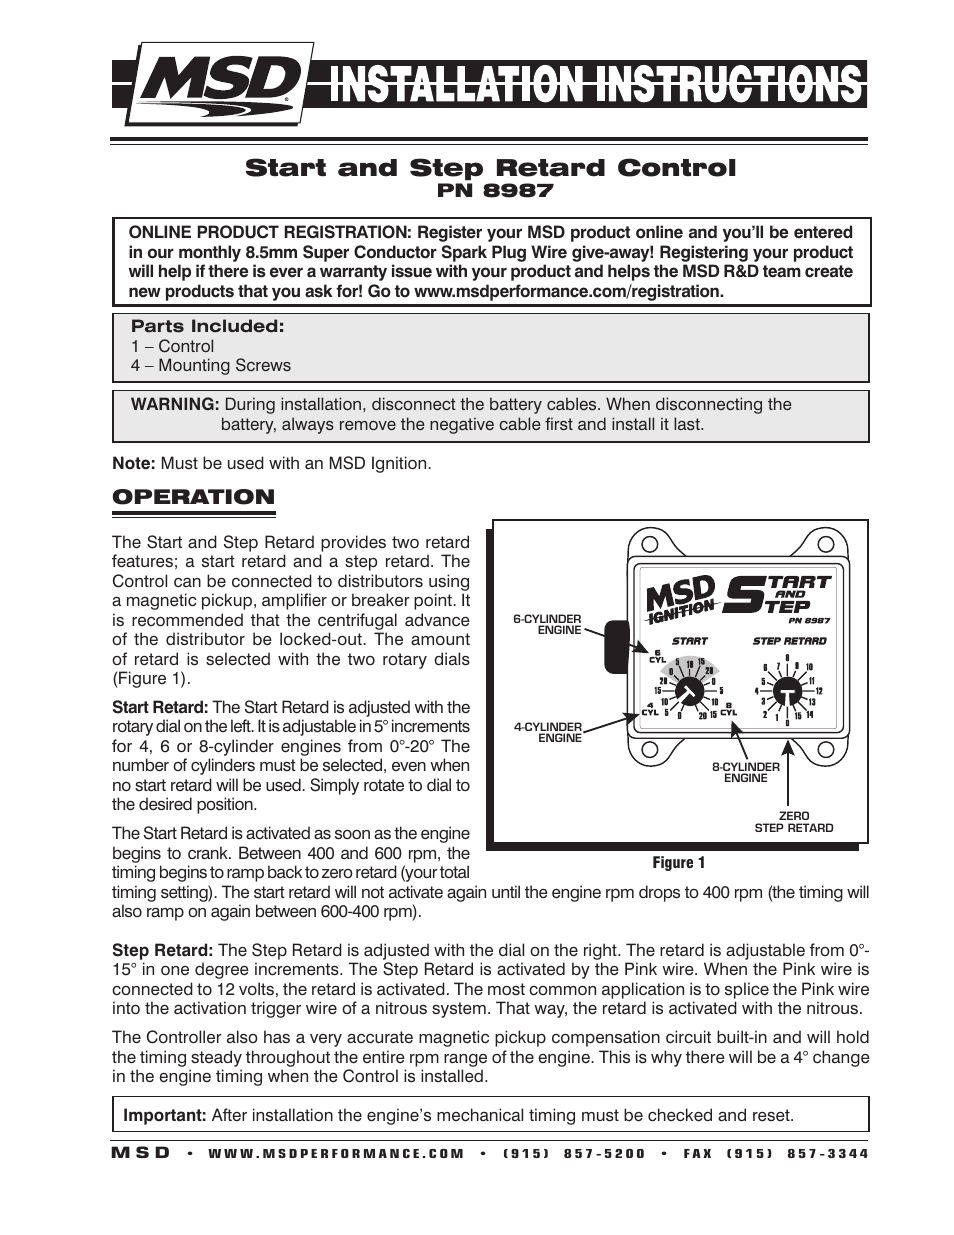 msd 8987 start and step timing control installation page1 msd 8987 start and step timing control installation user manual msd 8987 wiring diagram at gsmx.co